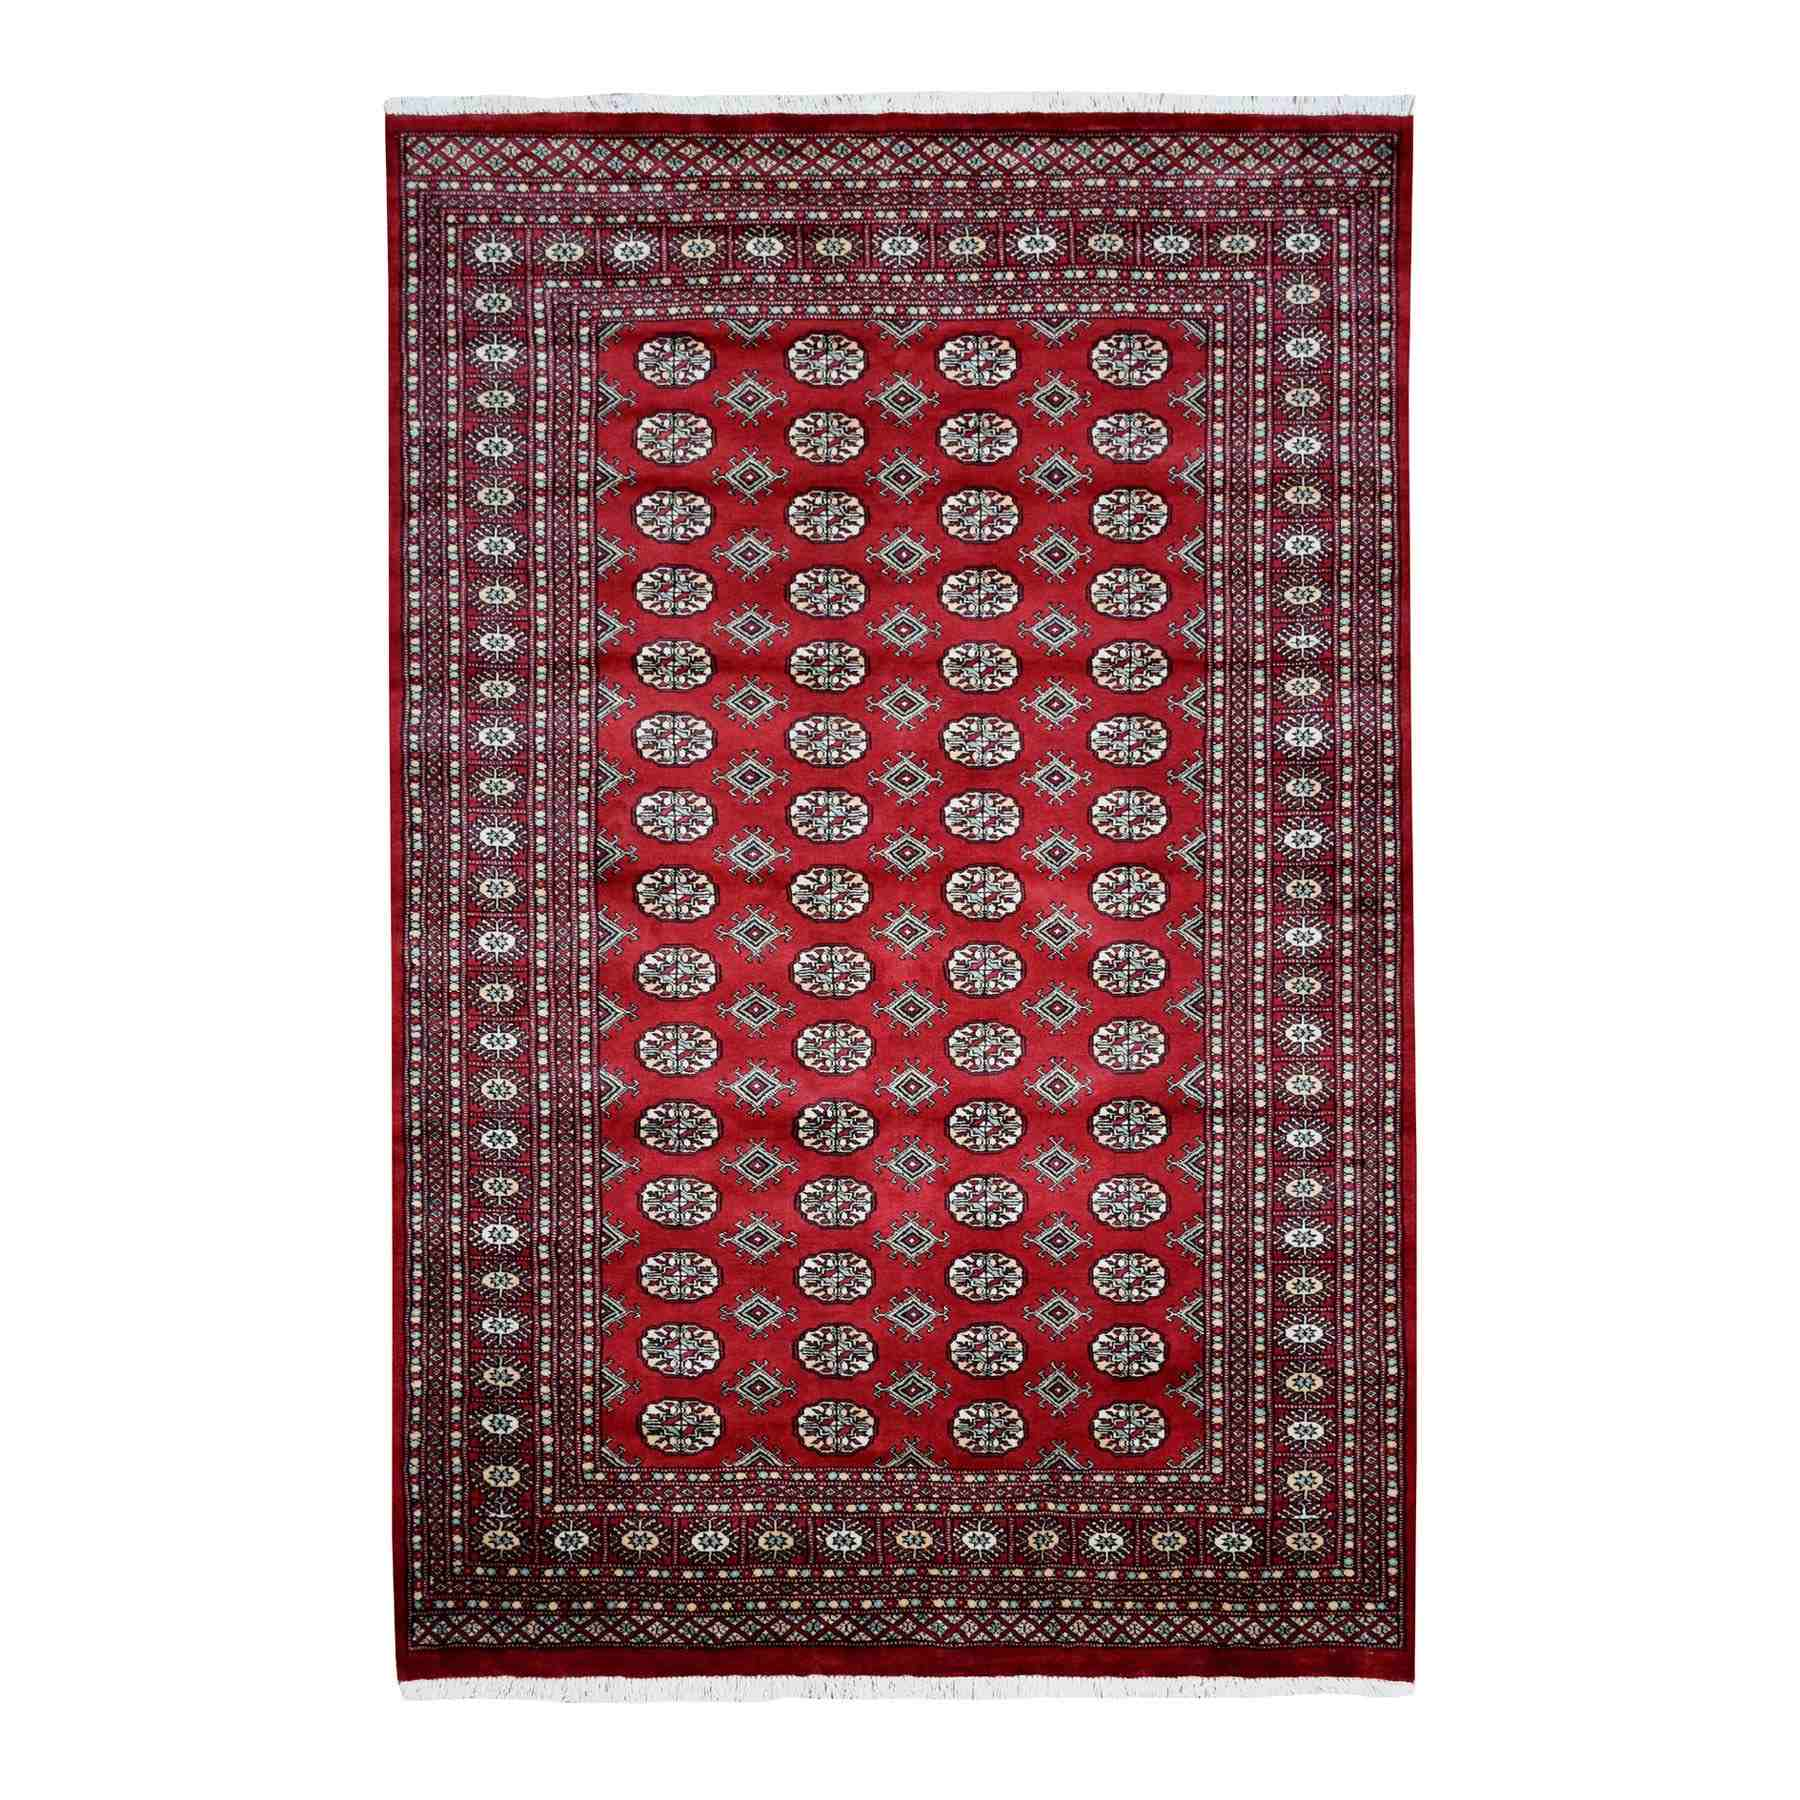 Nomadic And Village Collection Hand Knotted Red Rug No: 01110078